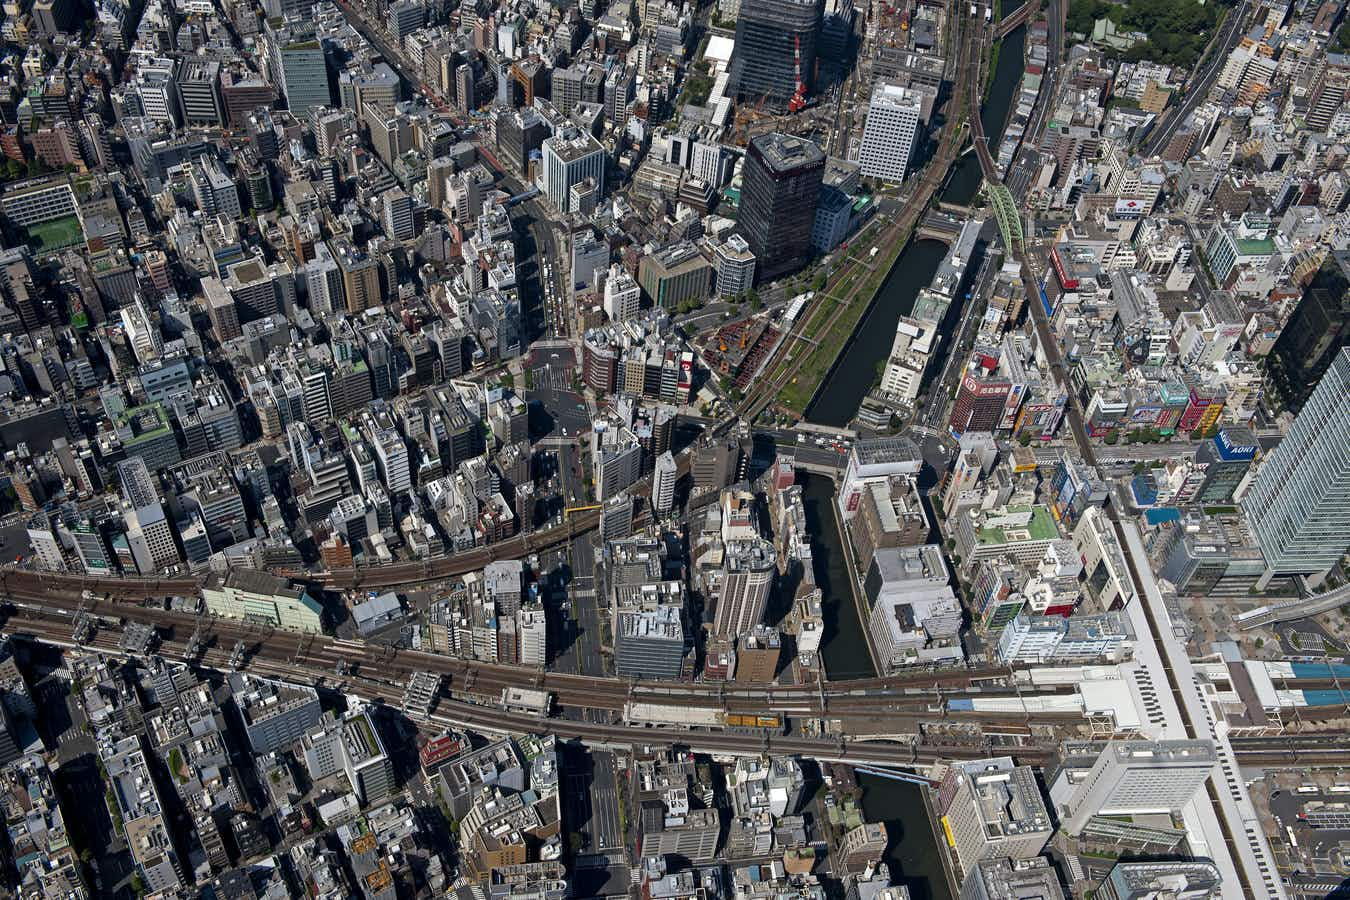 Abandoned Tokyo train station re-emerges to passengers after 90 years